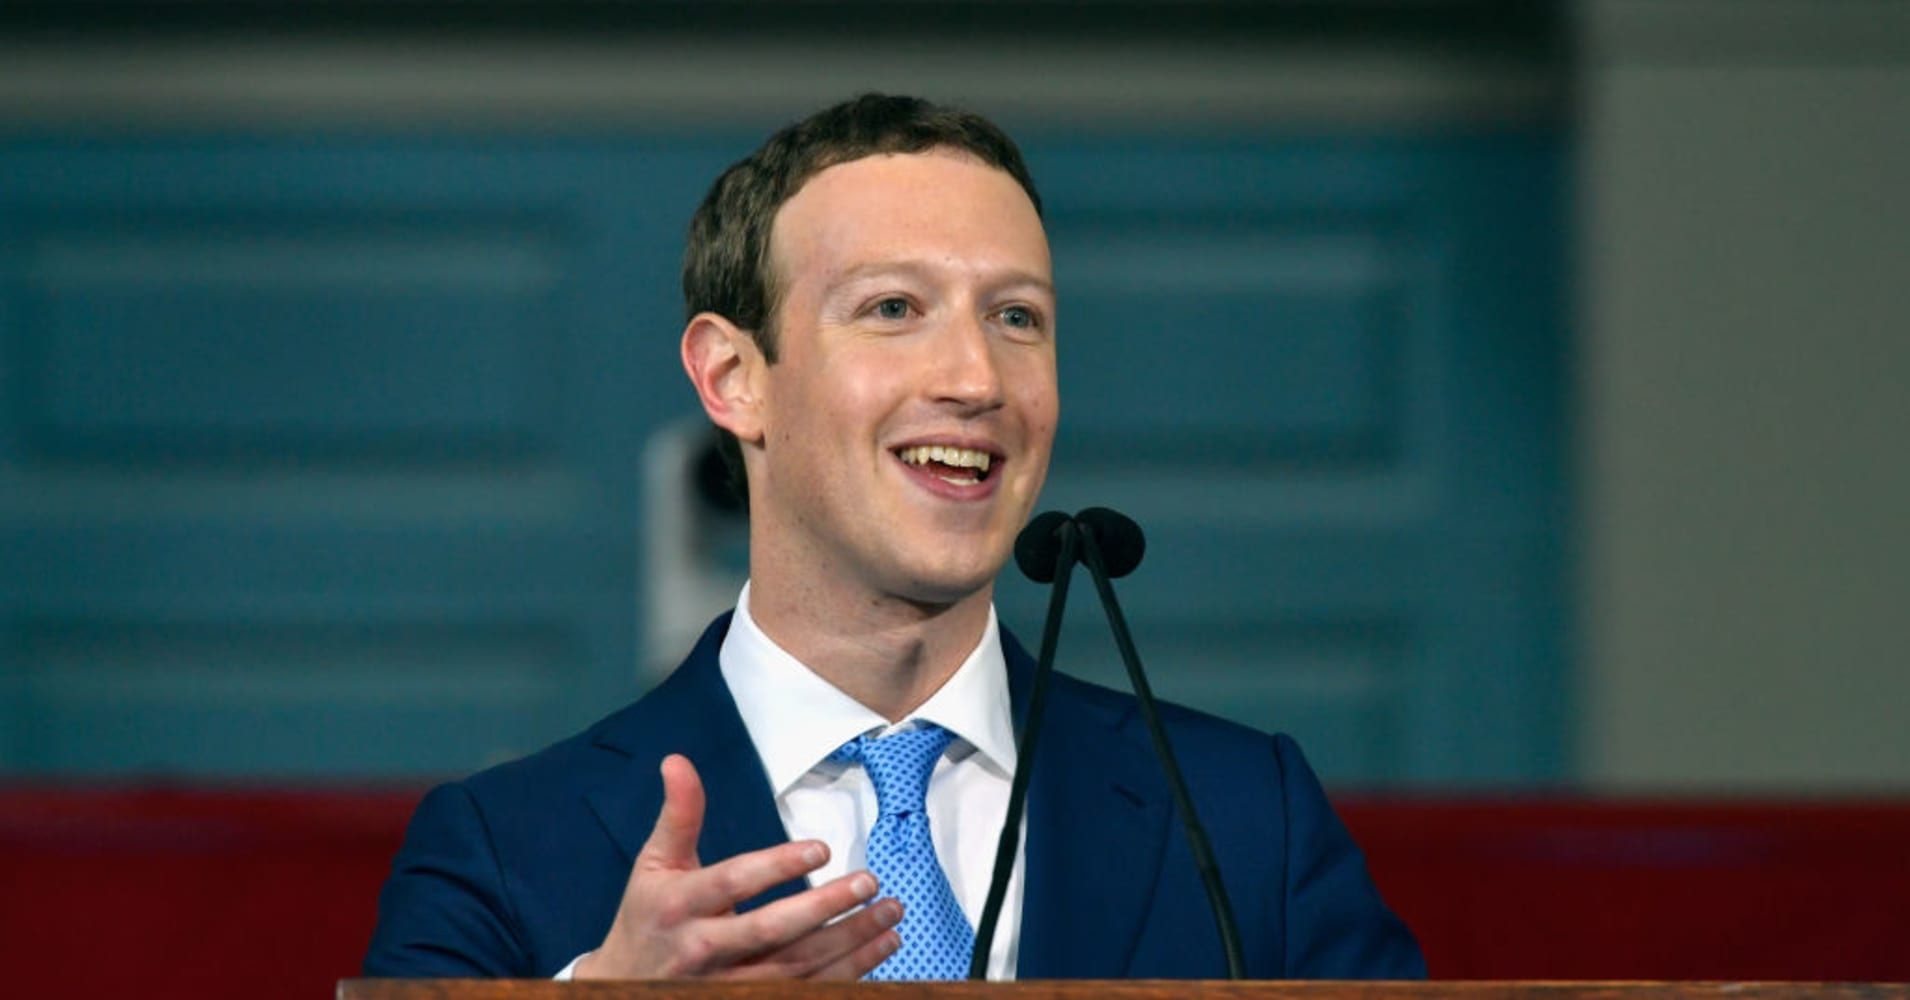 13 years after quitting, Facebook CEO Mark Zuckerberg gets honorary Harvard degree